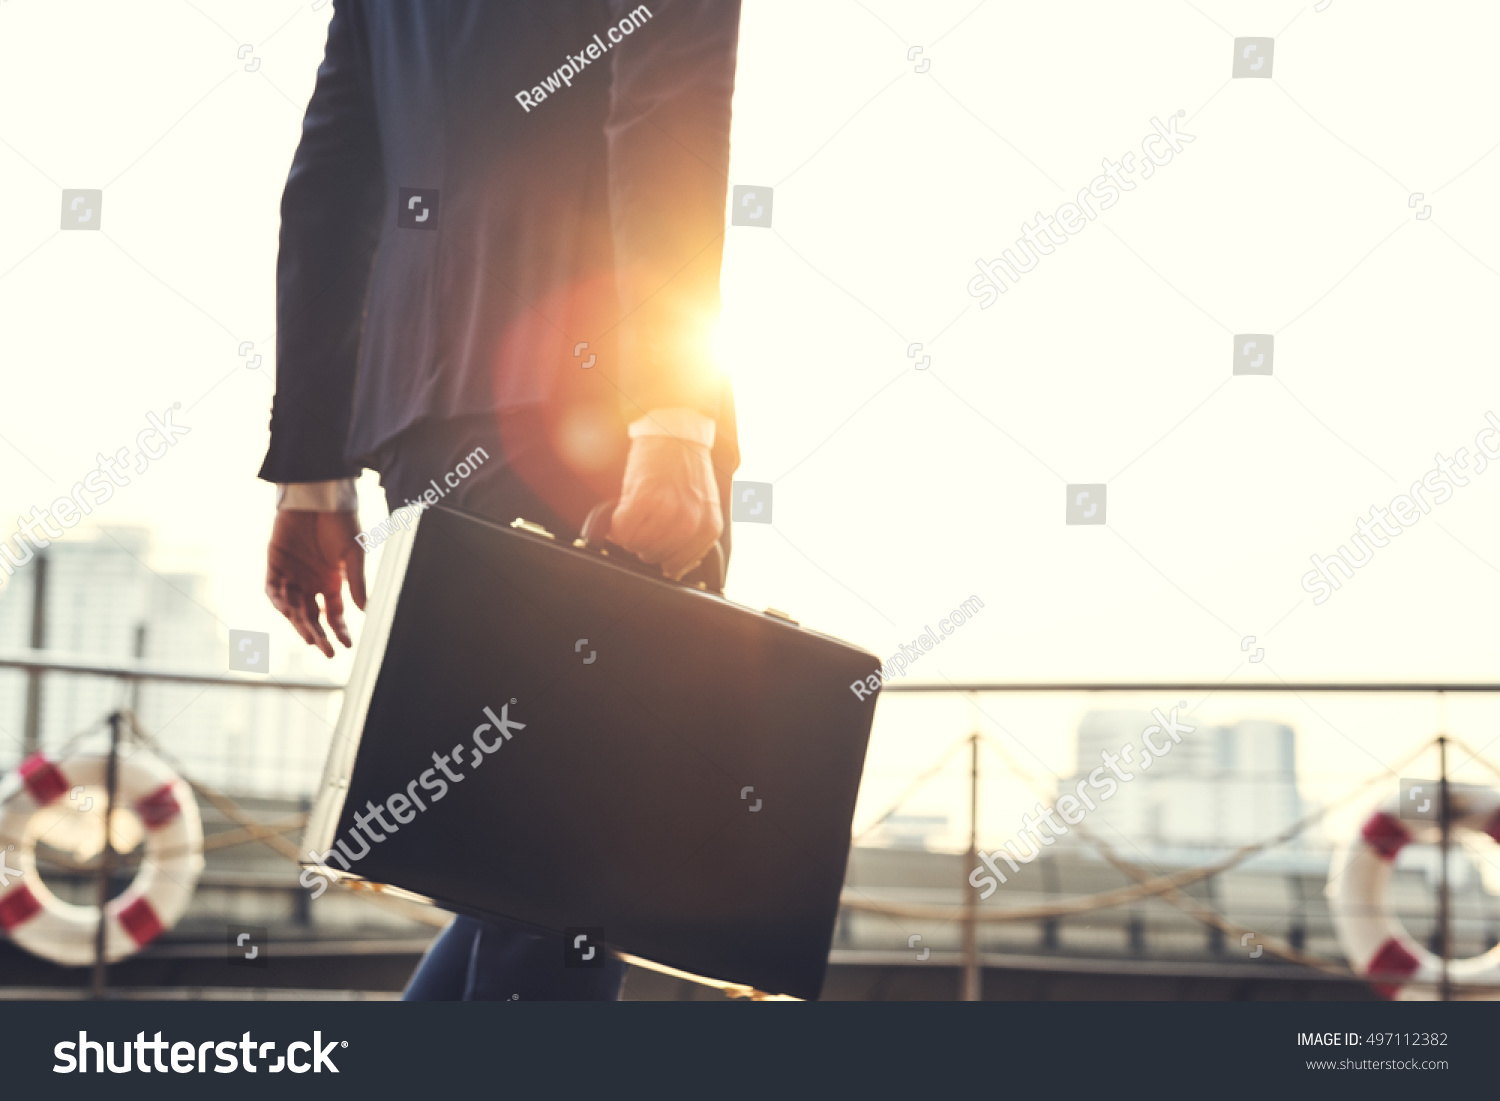 stock-photo-businessman-worker-rush-hour-concept-497112382